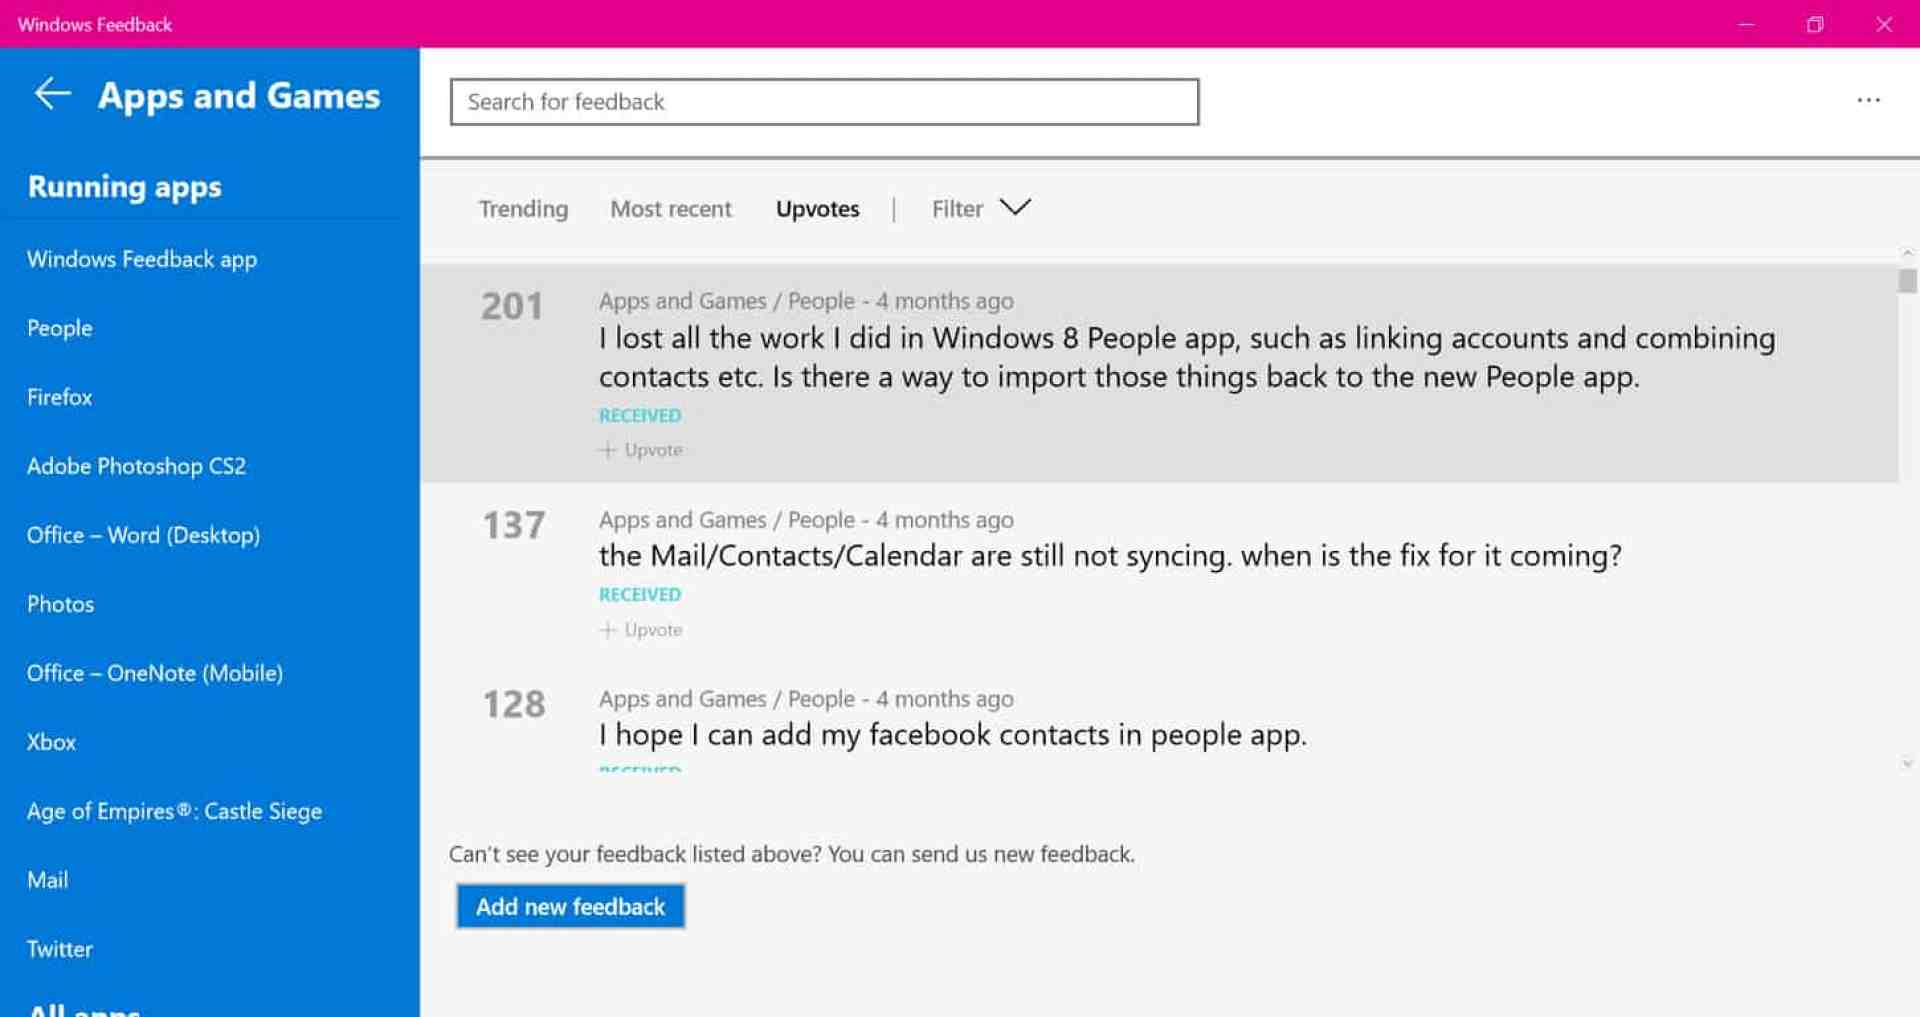 Many Windows 10 users unable to connect social apps to the Windows 10 People app